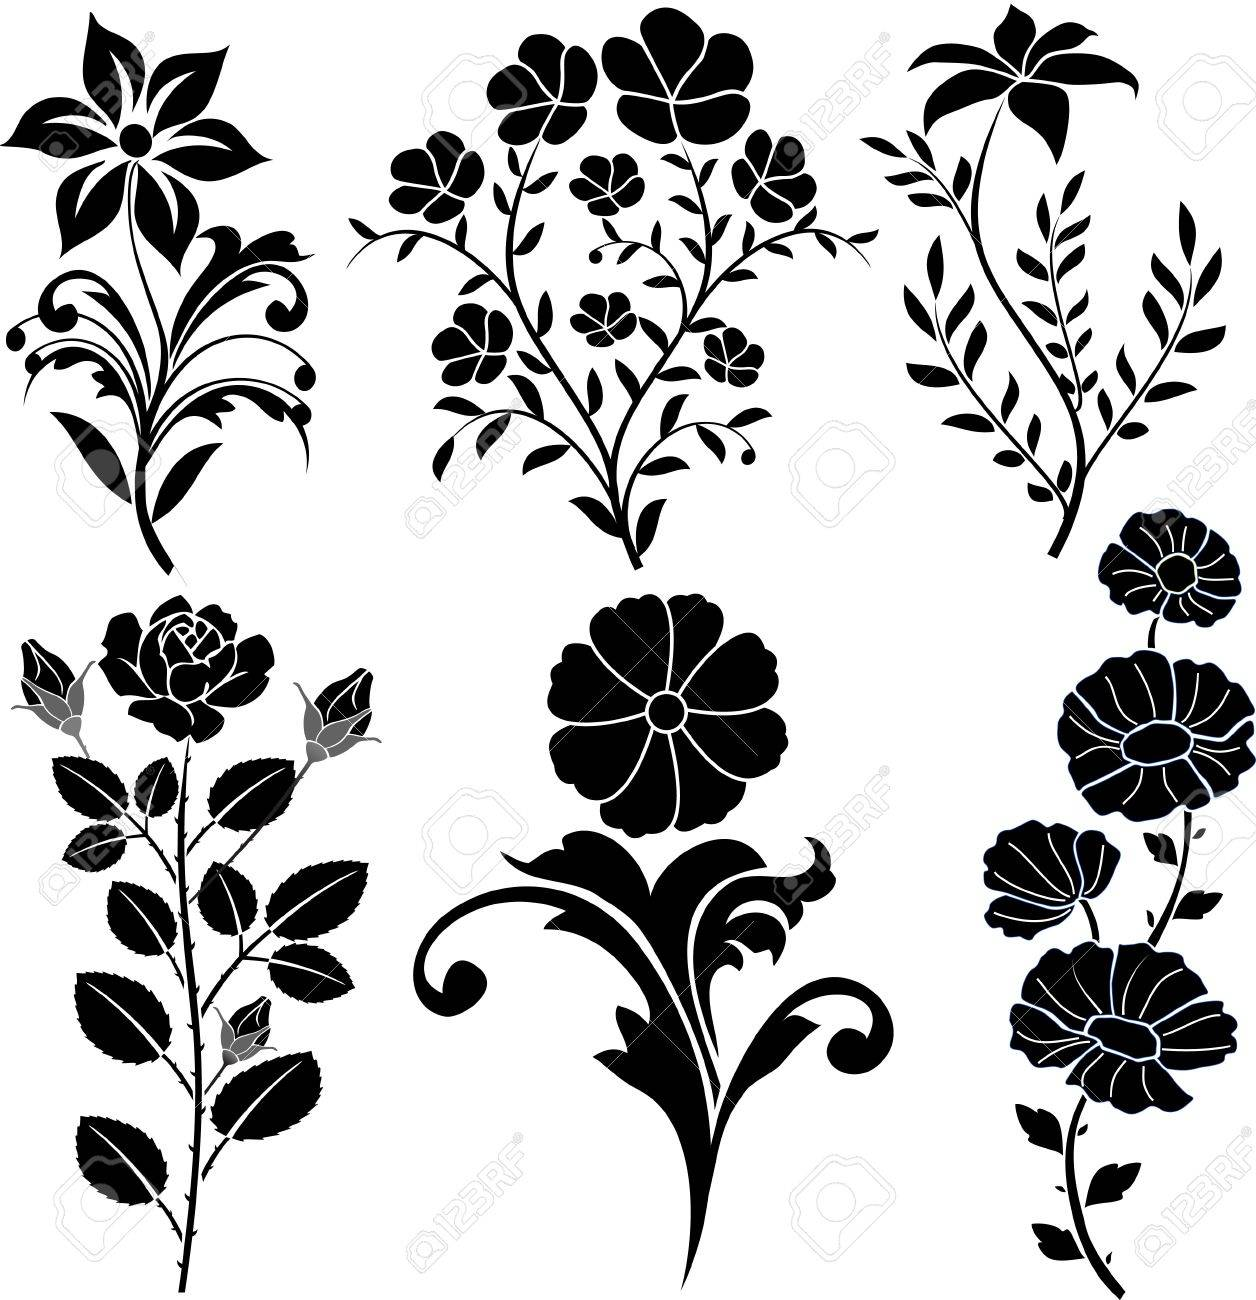 Floral Decoration floral decoration royalty free cliparts, vectors, and stock